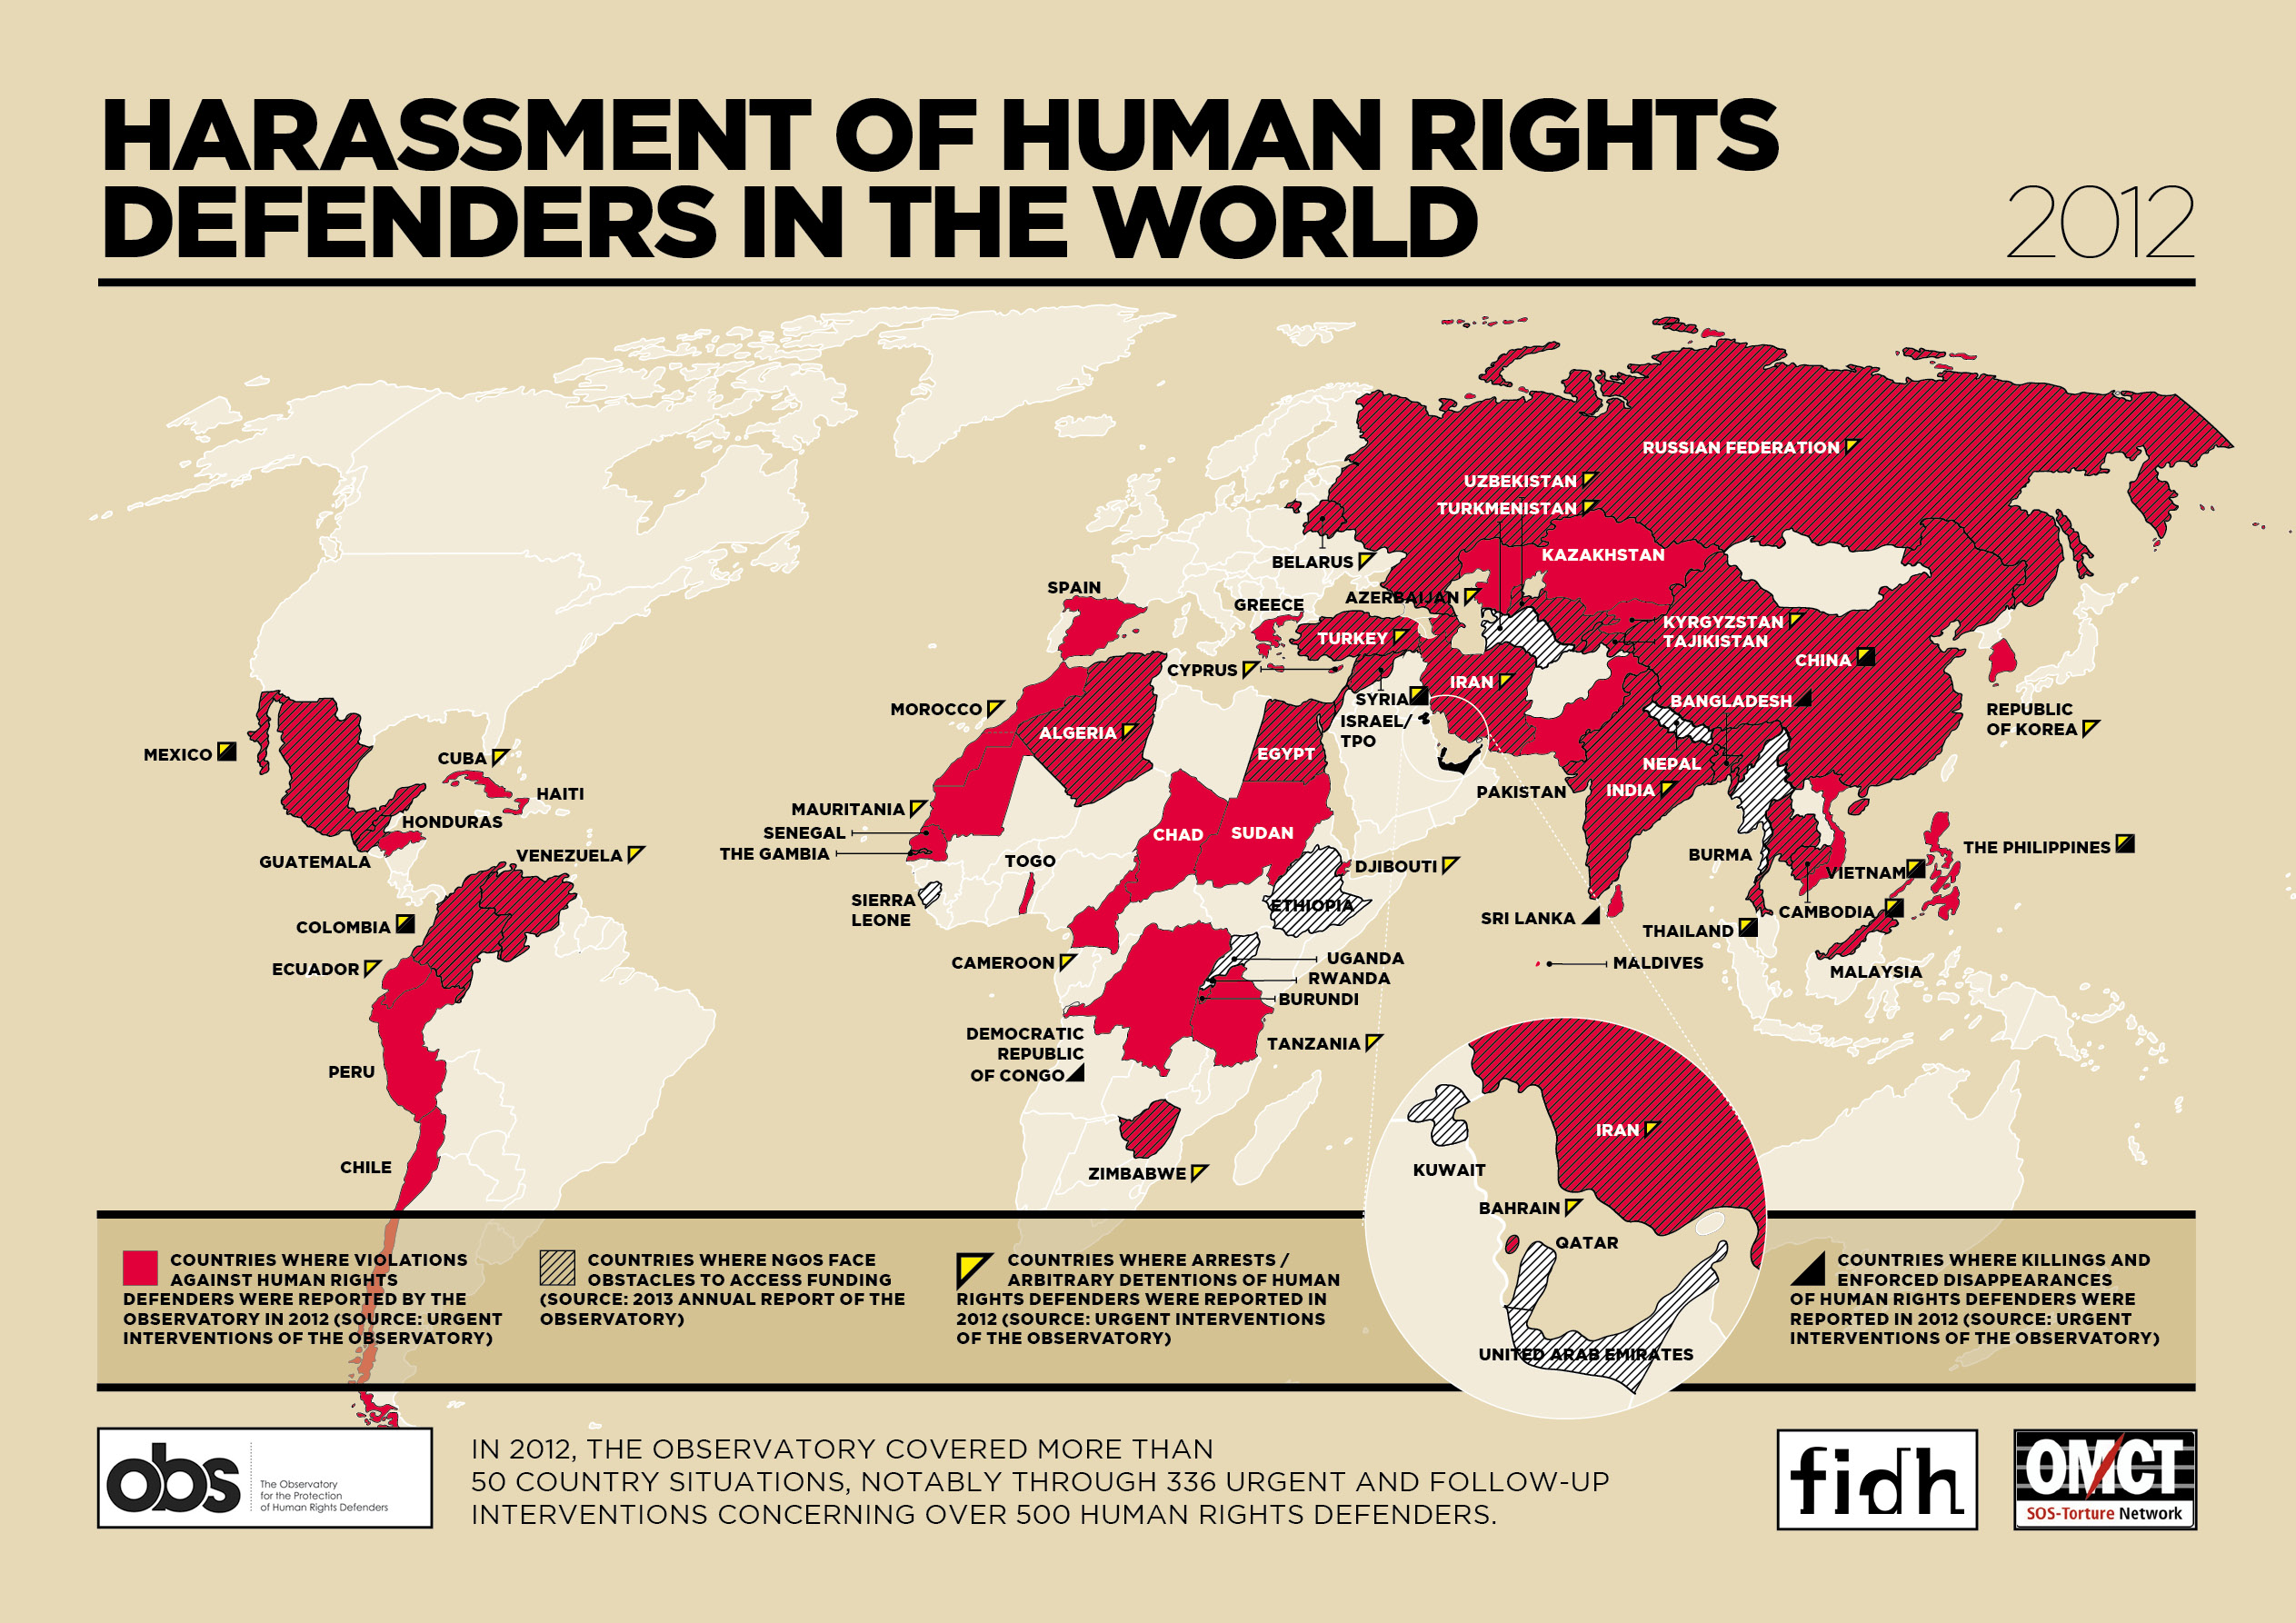 an analysis of human rights violations around the world The human rights data analysis group is a non-profit, non-partisan organization that applies rigorous science to the analysis of human rights violations around the world we are a team with expertise in mathematical statistics, computer science, demography, and social science.